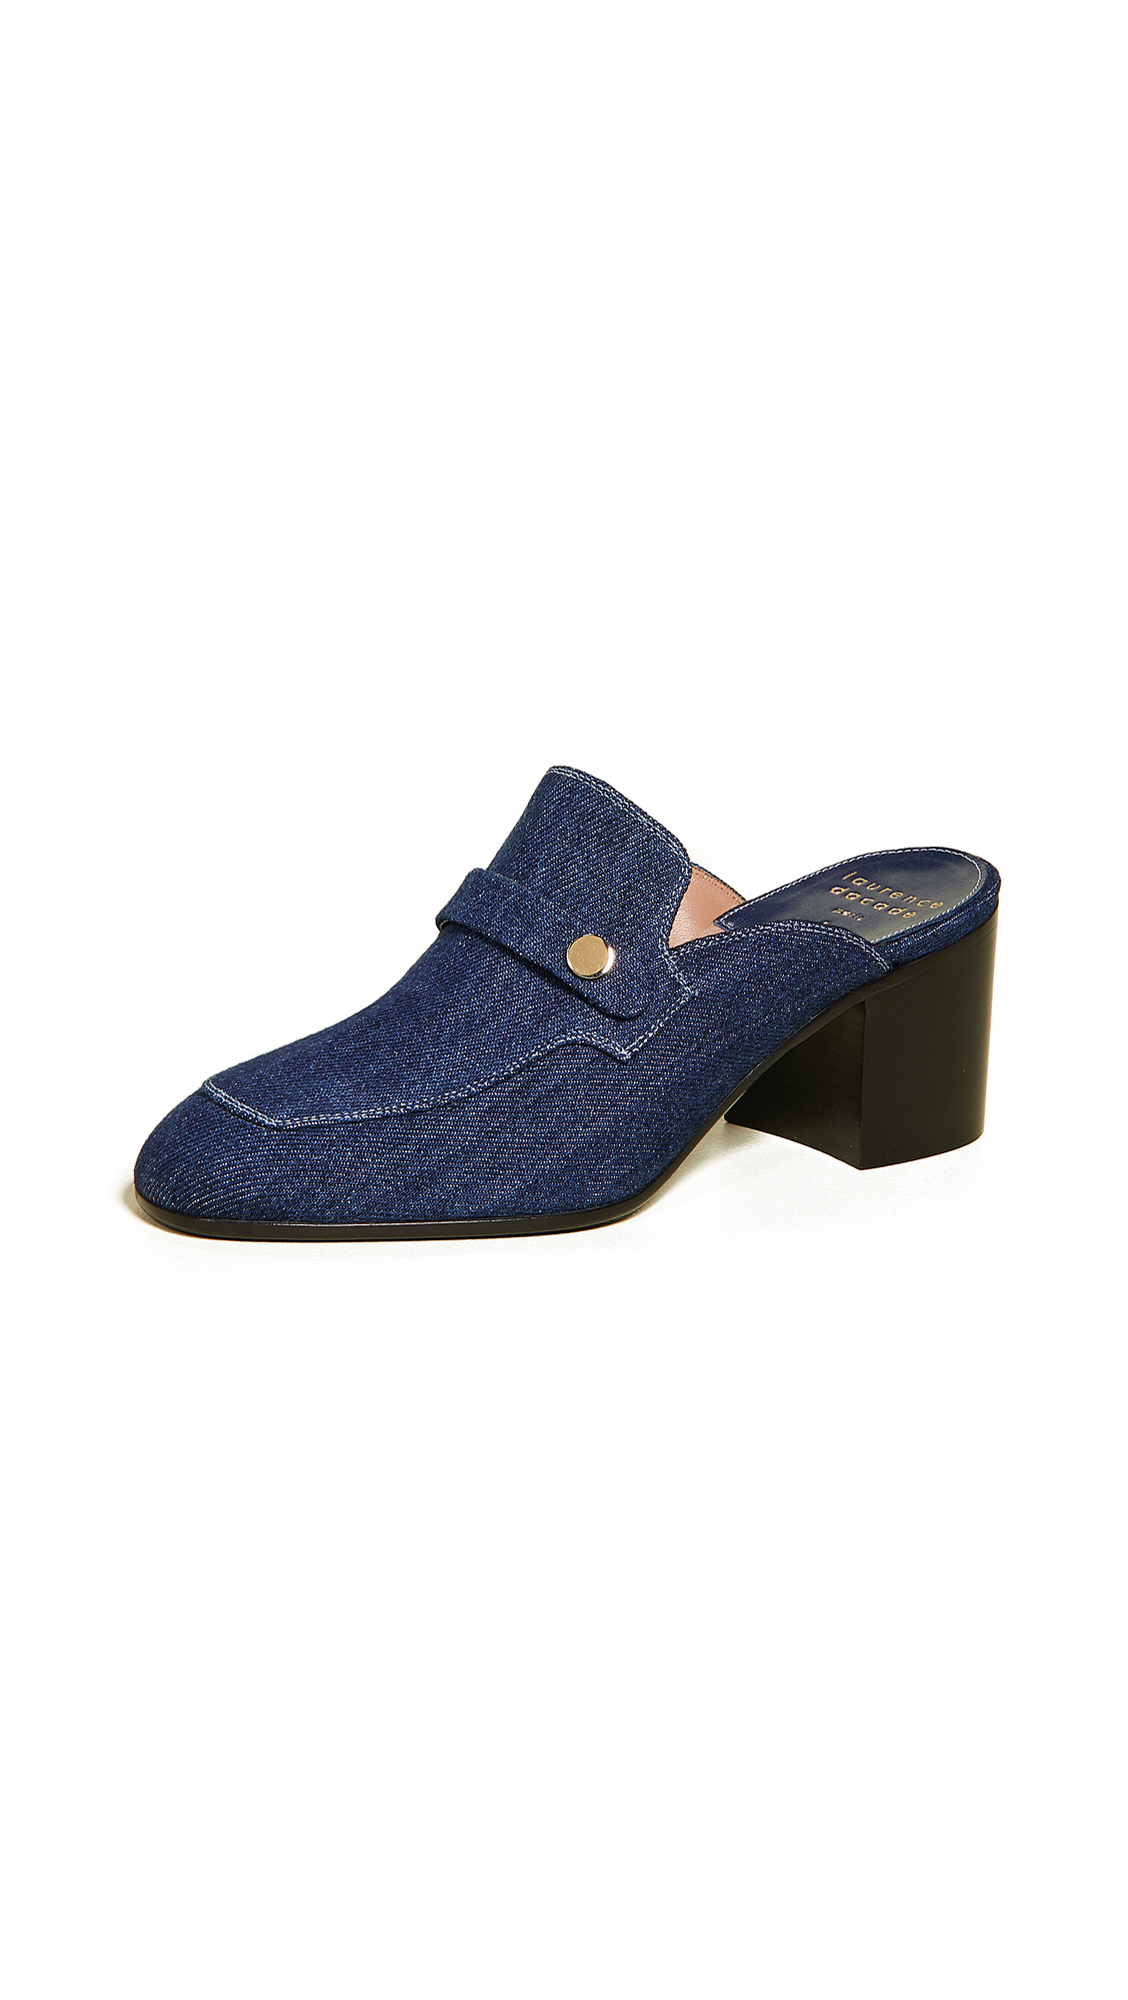 Laurence Dacade Thelma Mules - Blue